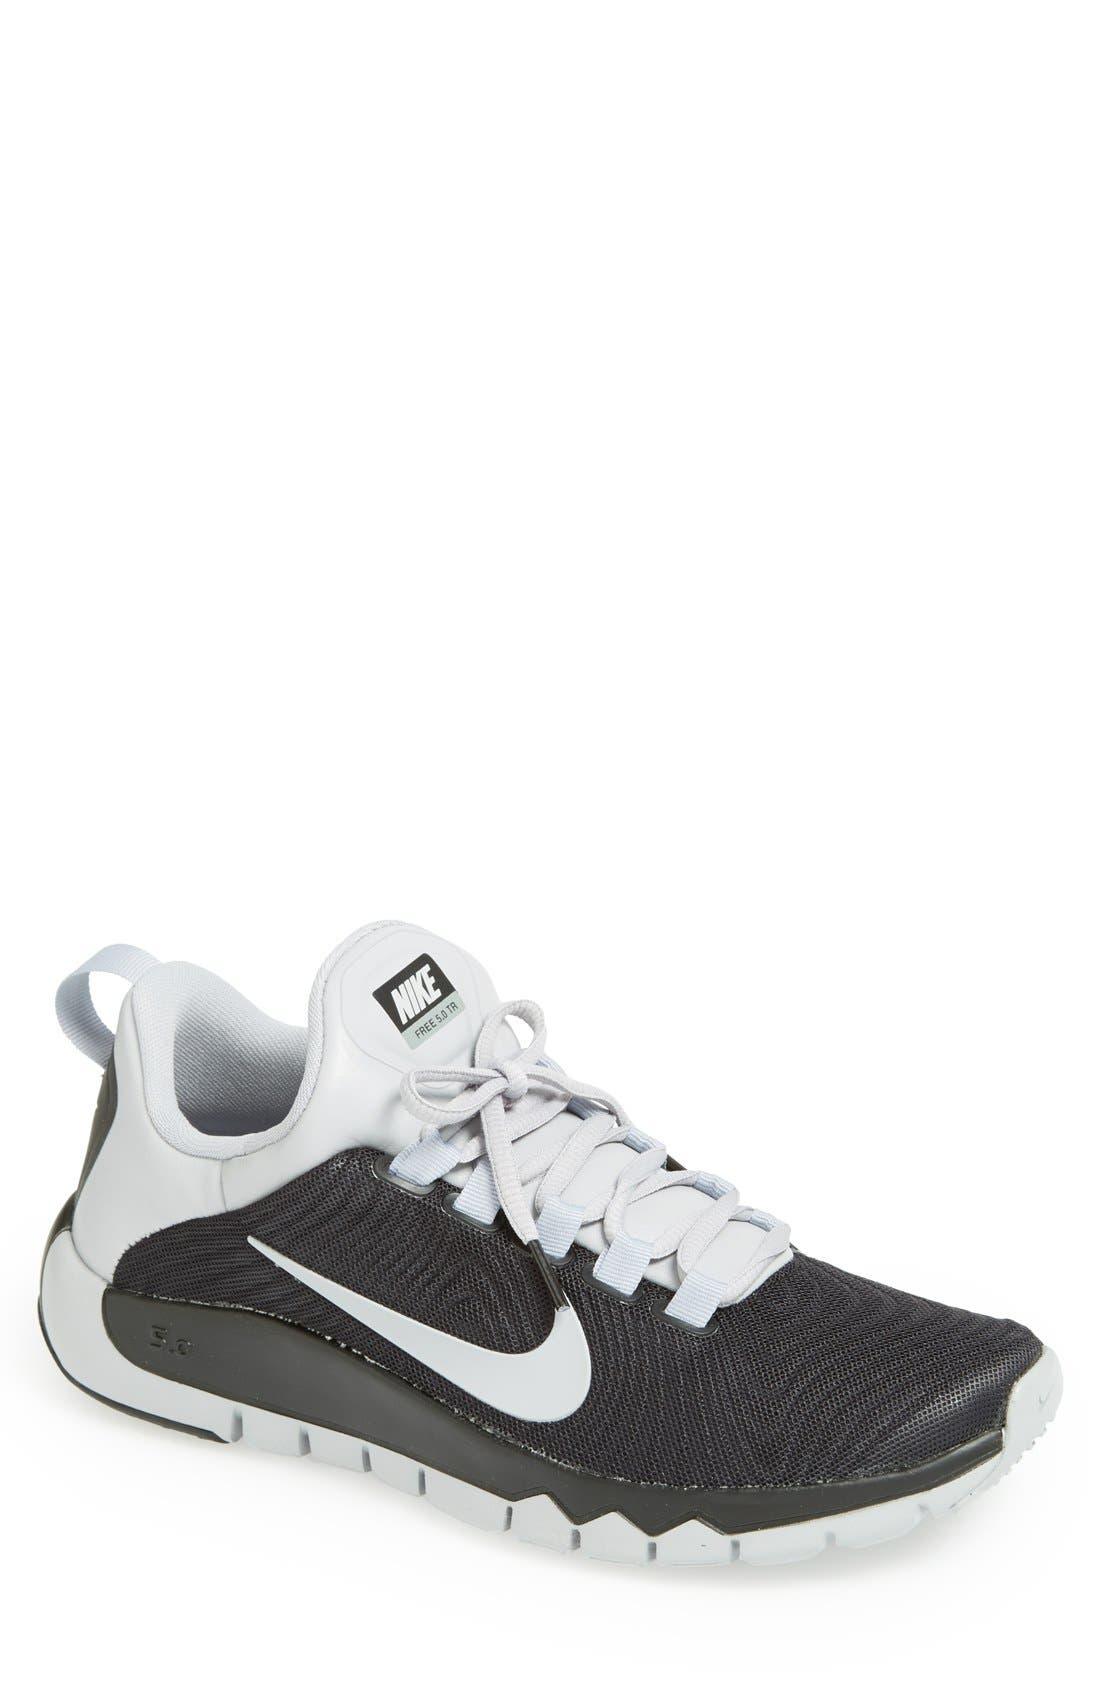 Main Image - Nike 'Free 5.0 Trainer' Training Shoe (Men)